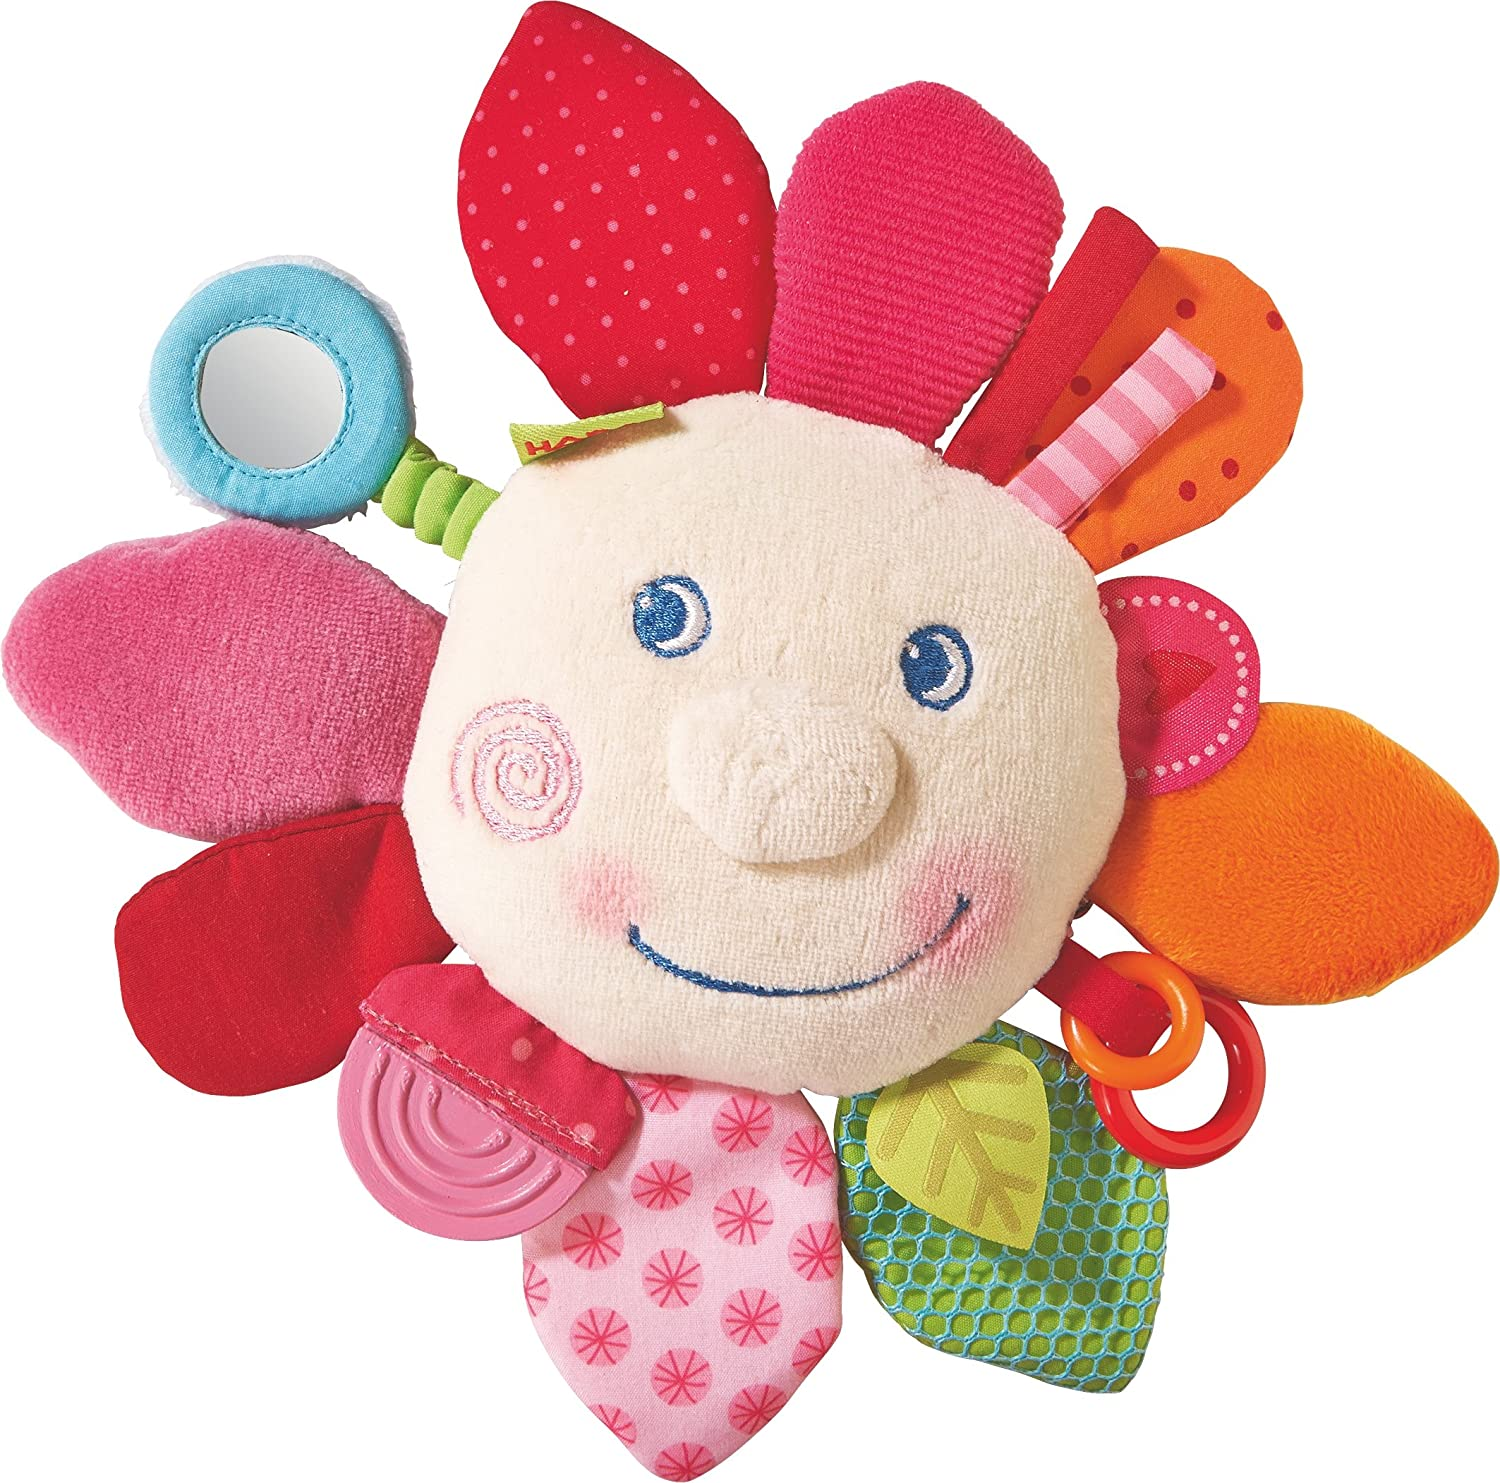 HABA Cuddly Spring Flower Teether Activity Toy